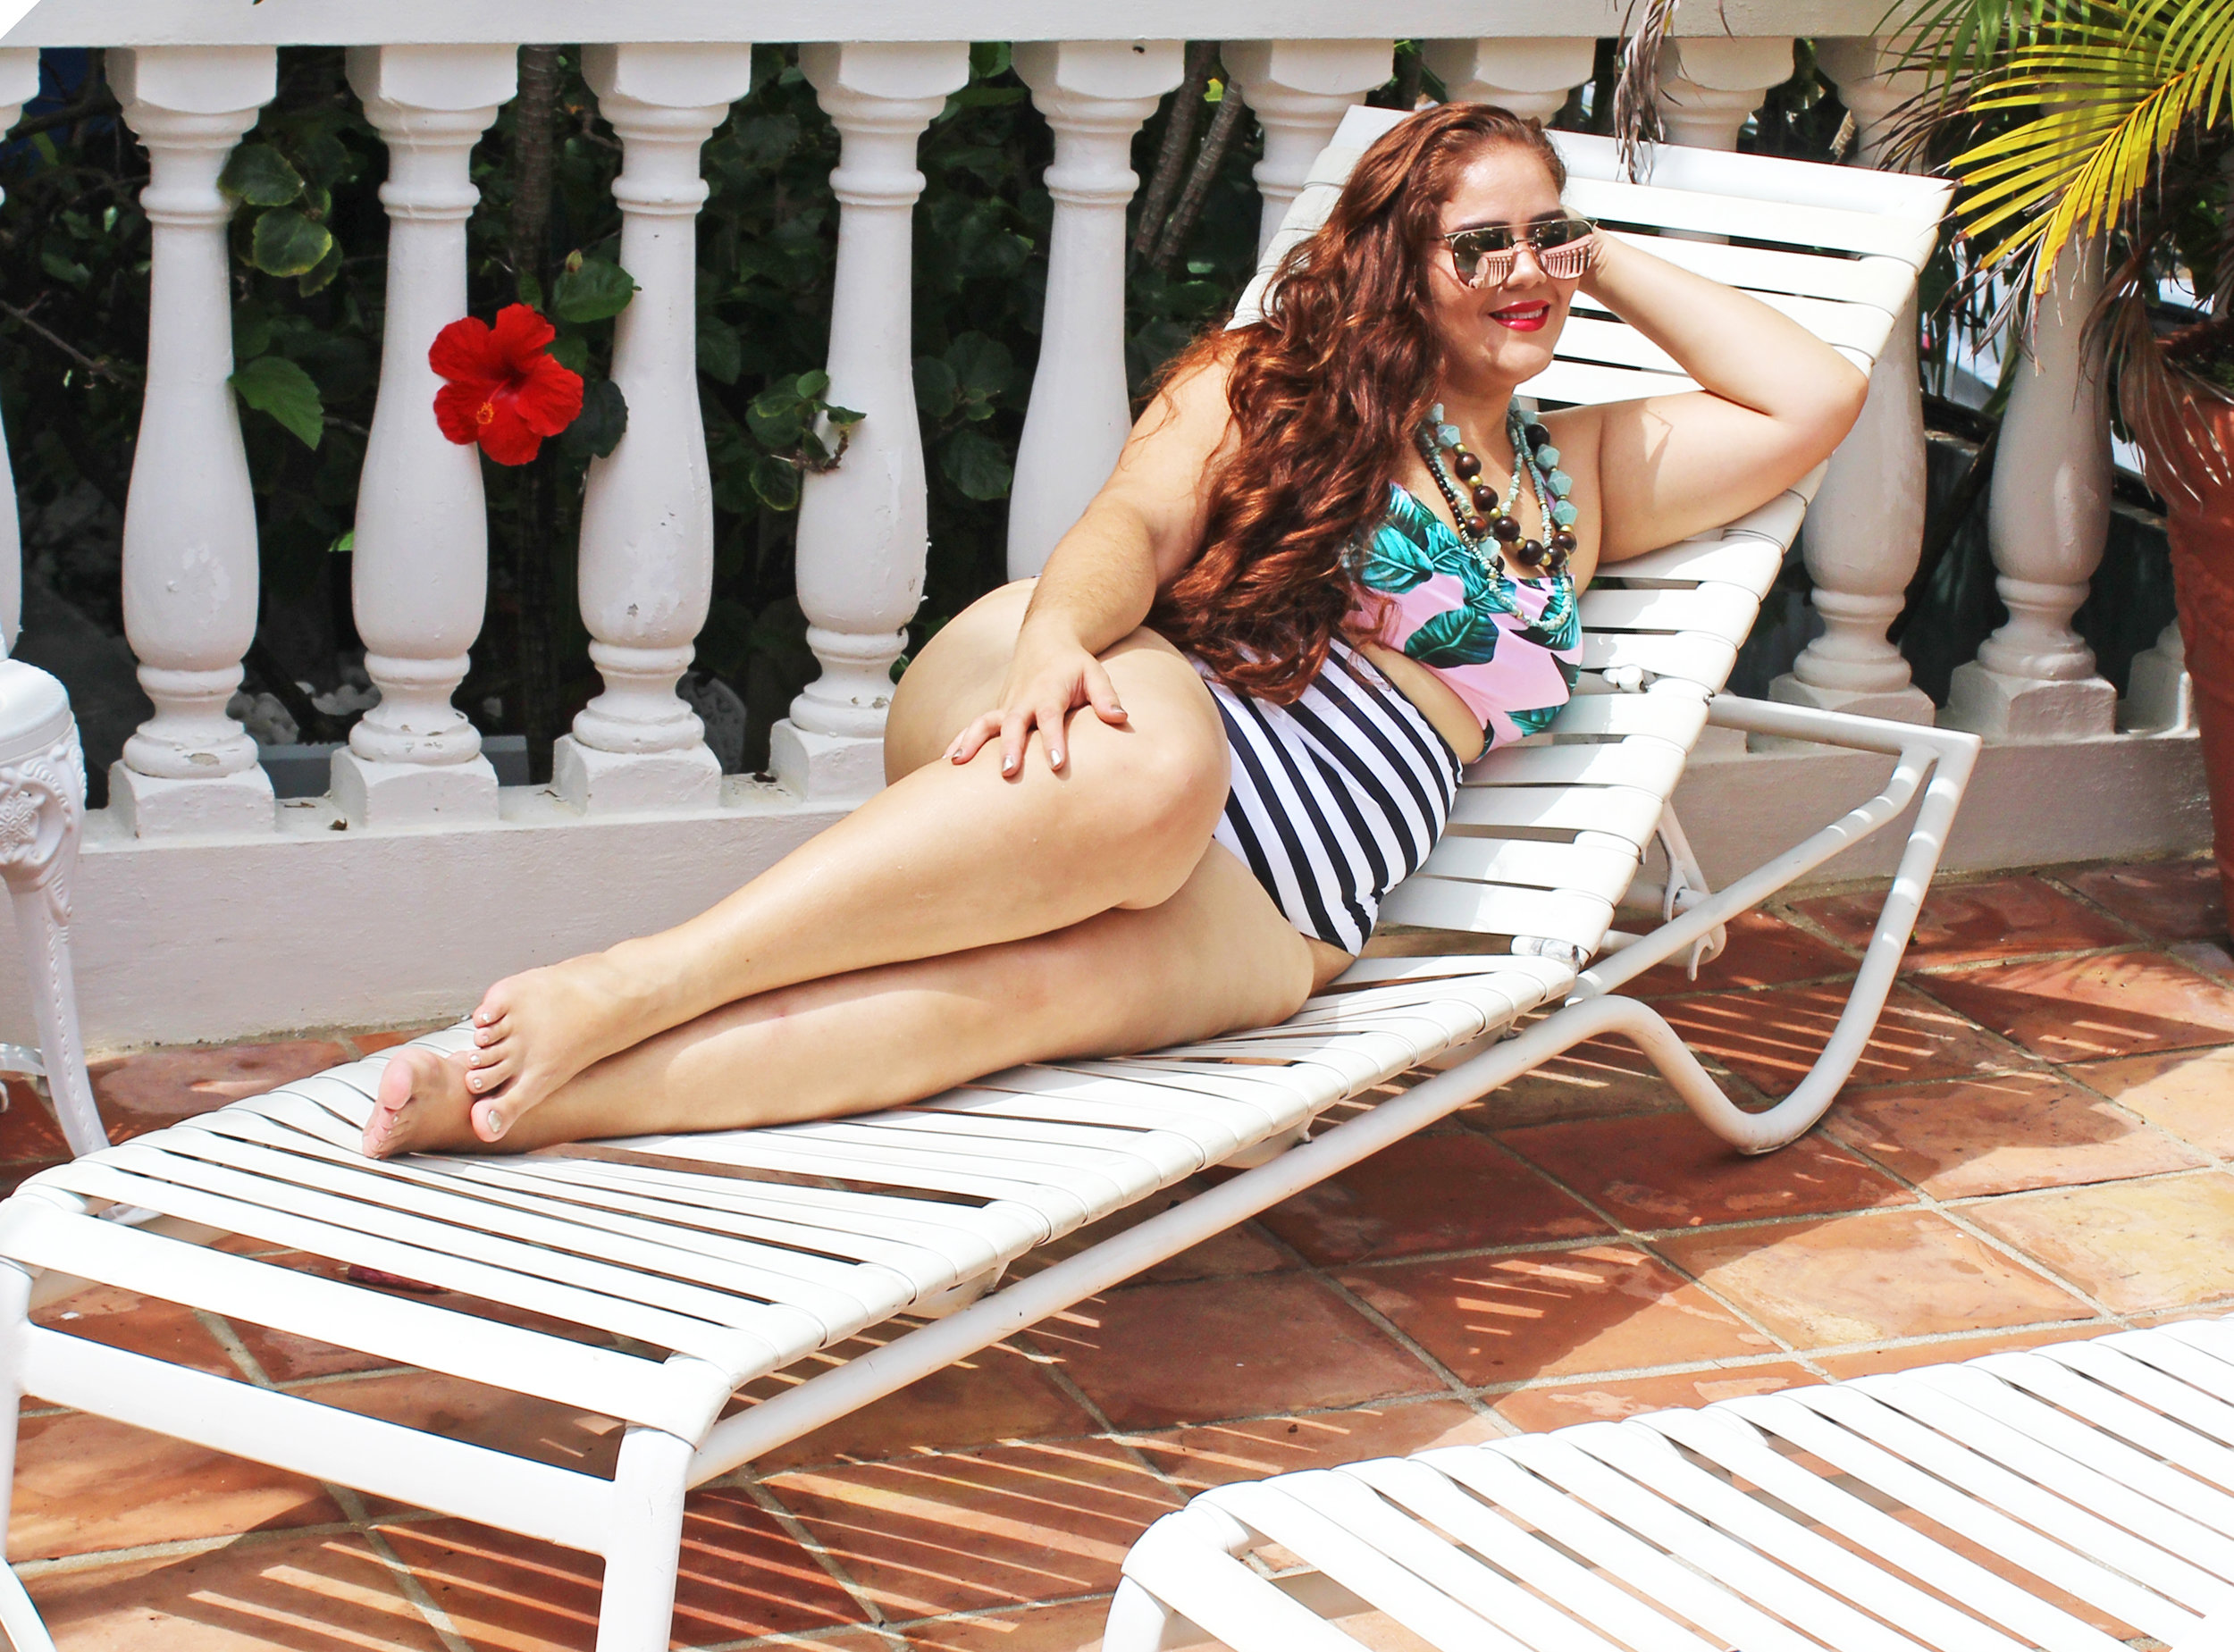 Swimsuit: Cupshe Leaves Printing Stripe Halter One-piece. $29.99. Size XXL (Fits a little loose on me, 14-16, perfect if you are a 18-20 or like a loose fit). Sunglasses:  Zelig Wear Wanderlust Collection . Made in Puerto Rico.